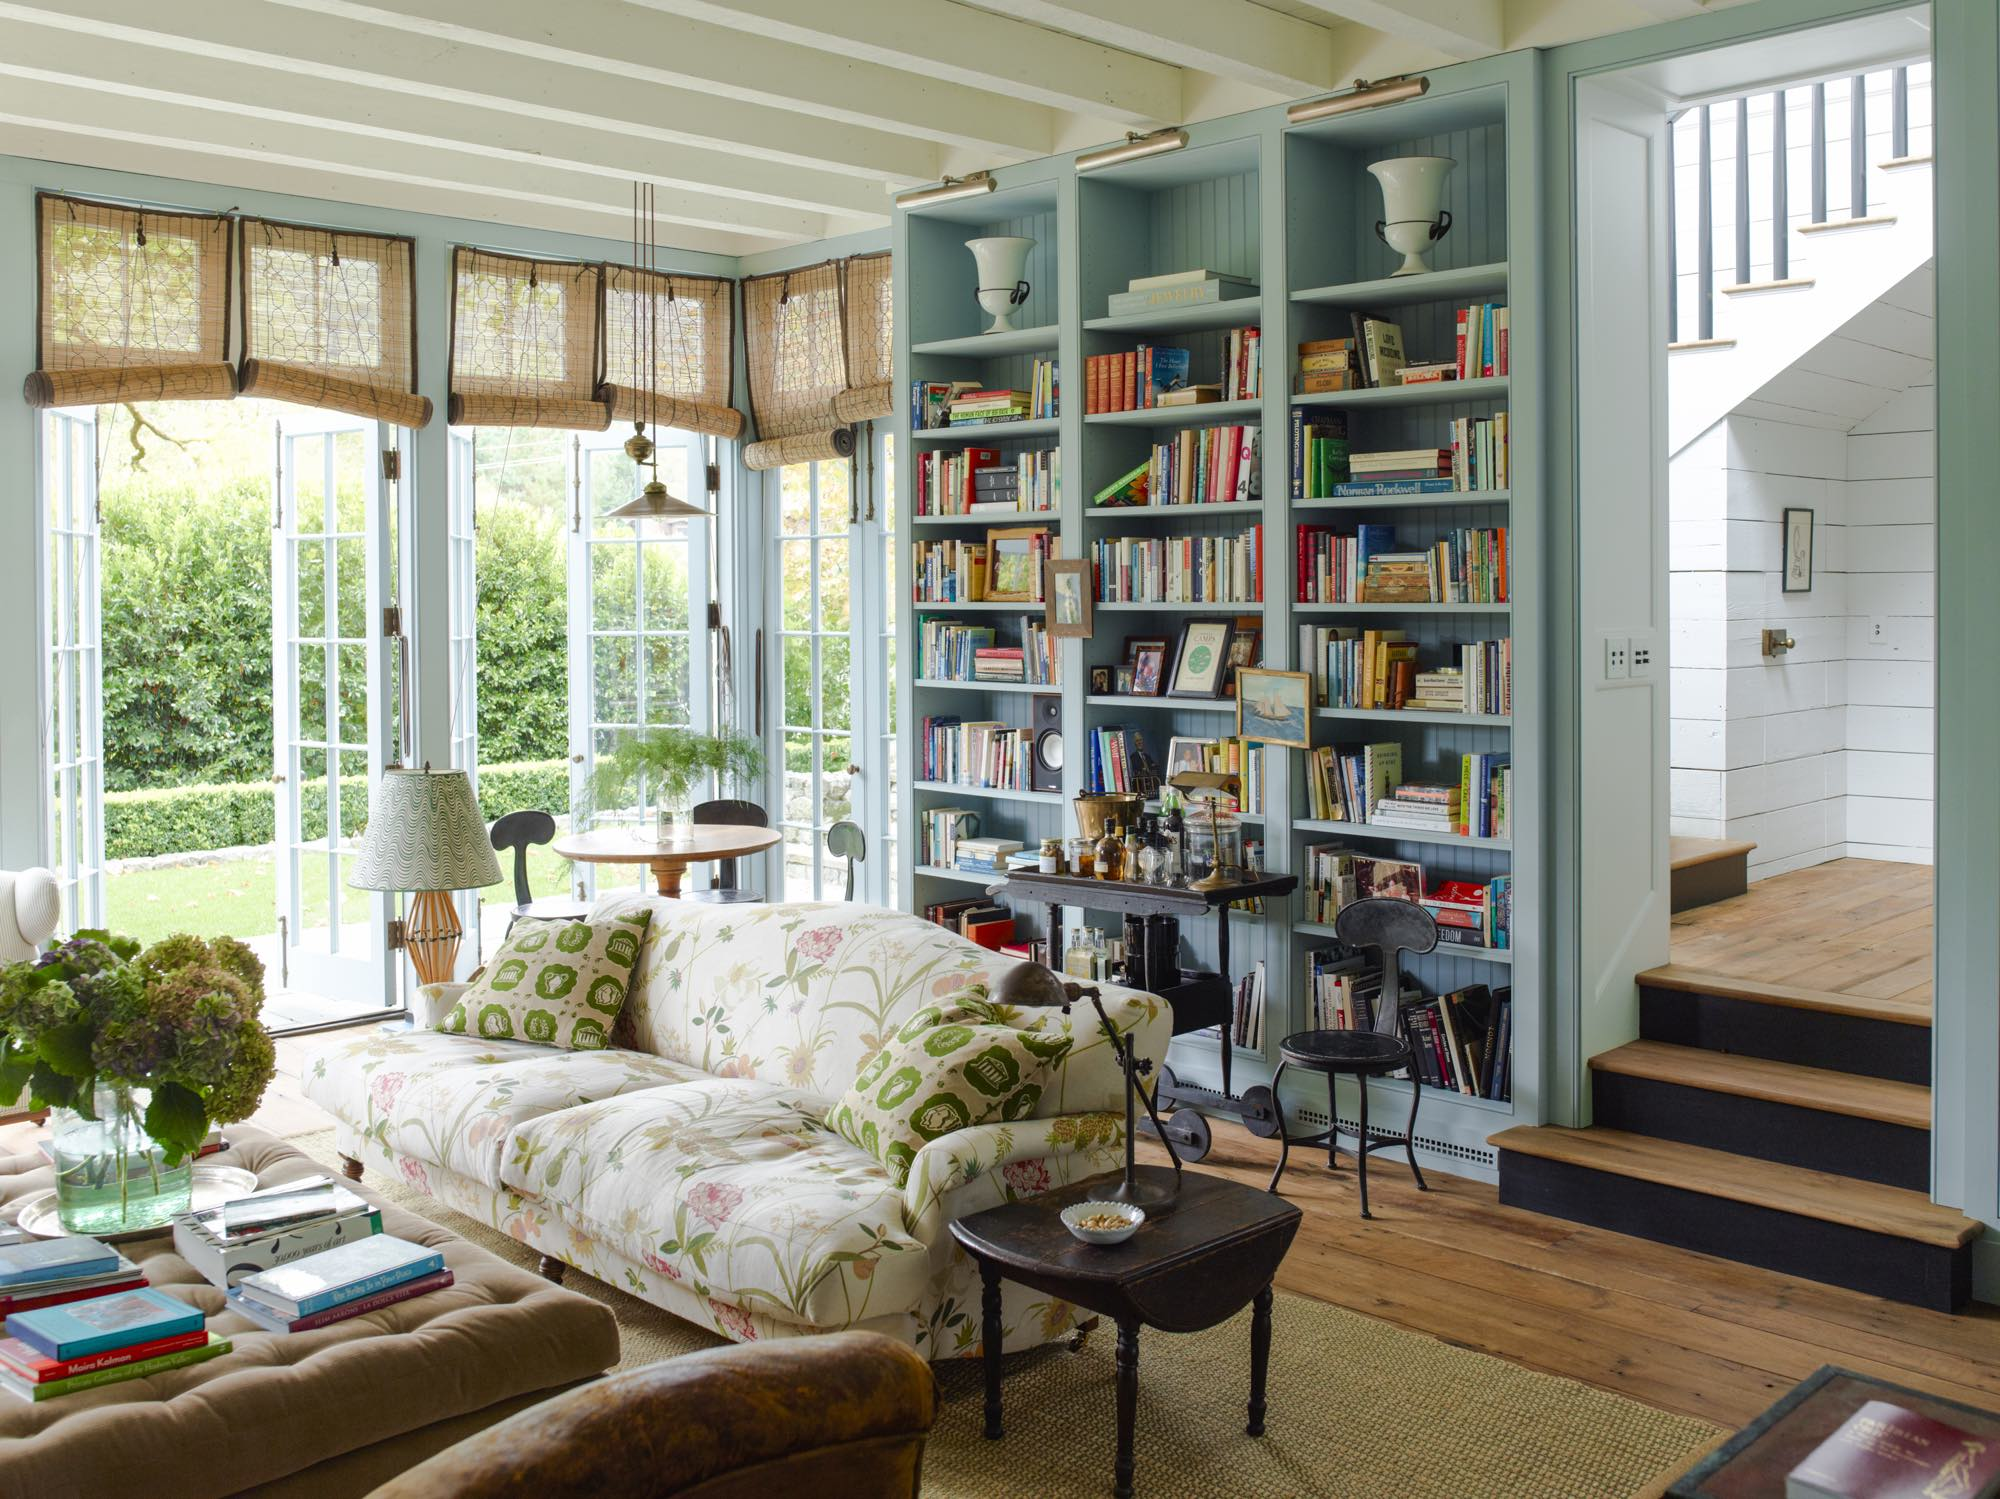 The Inspired Room Voted Readers Favorite Top Decorating Blog